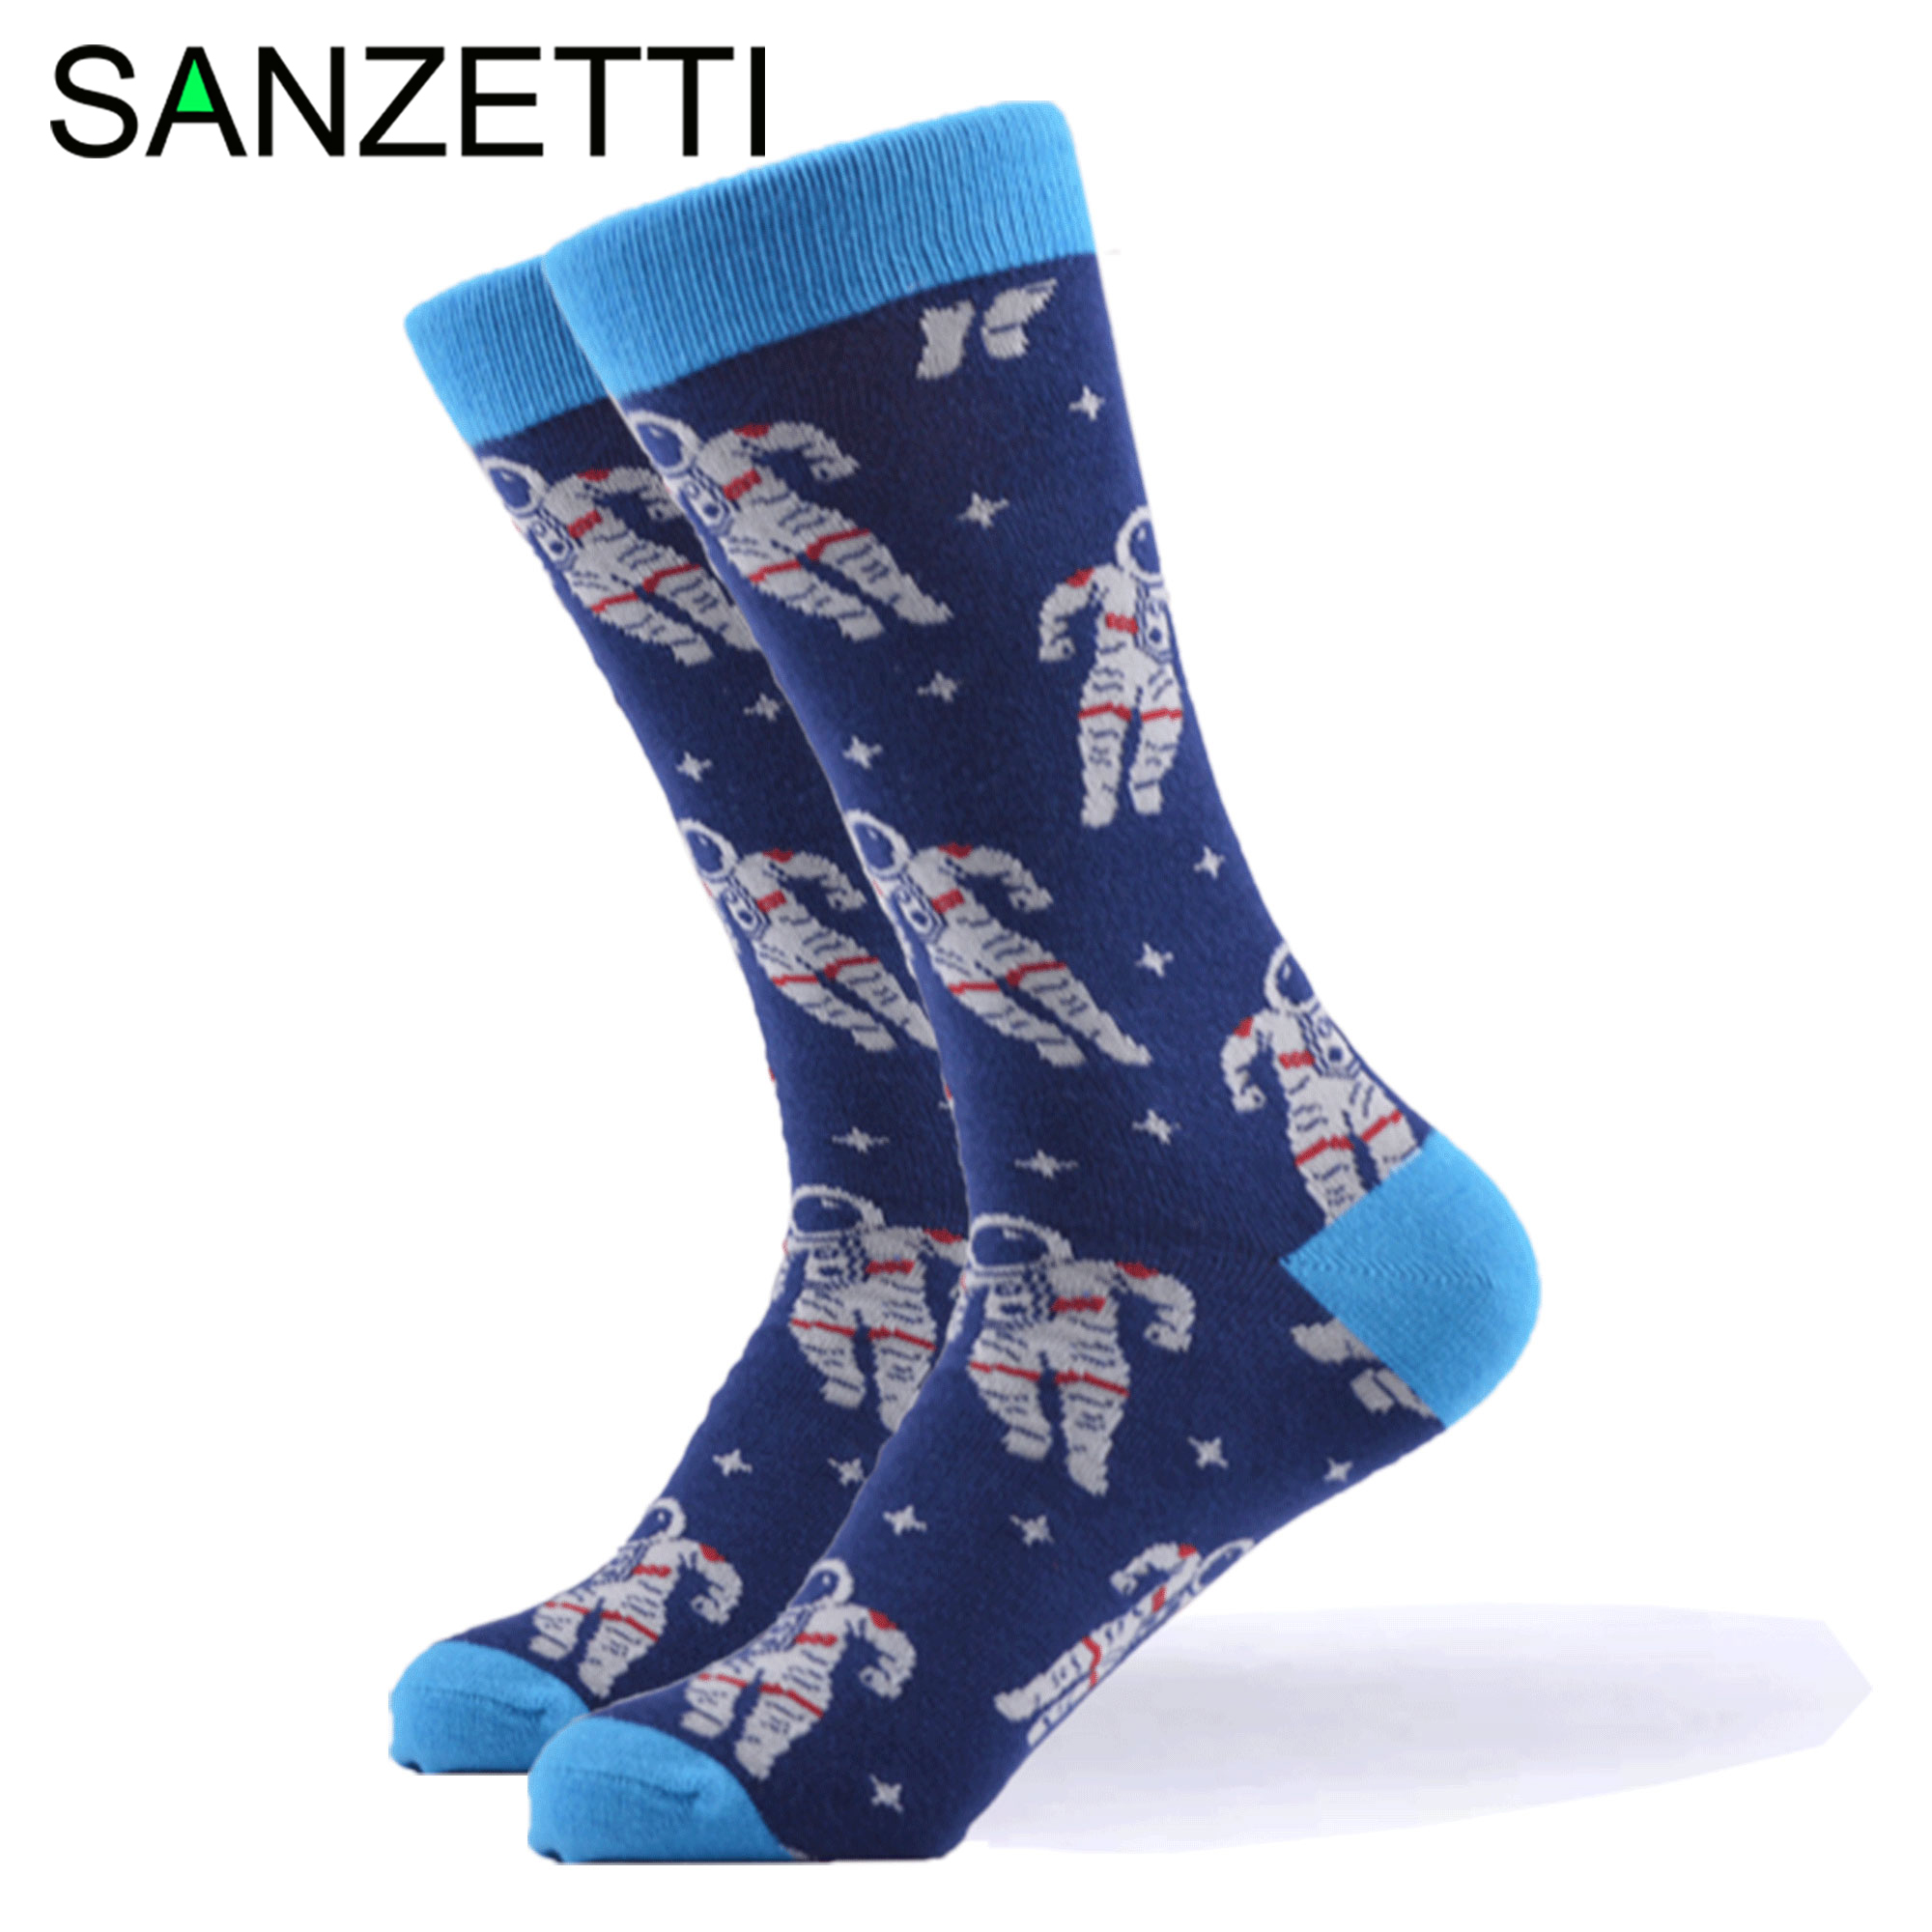 SANZETTI 1 Pair New Happy Socks High Quality Men's Colorful Comfortable Combed Cotton Fun Space Novelty Gift Wedding Dress Socks